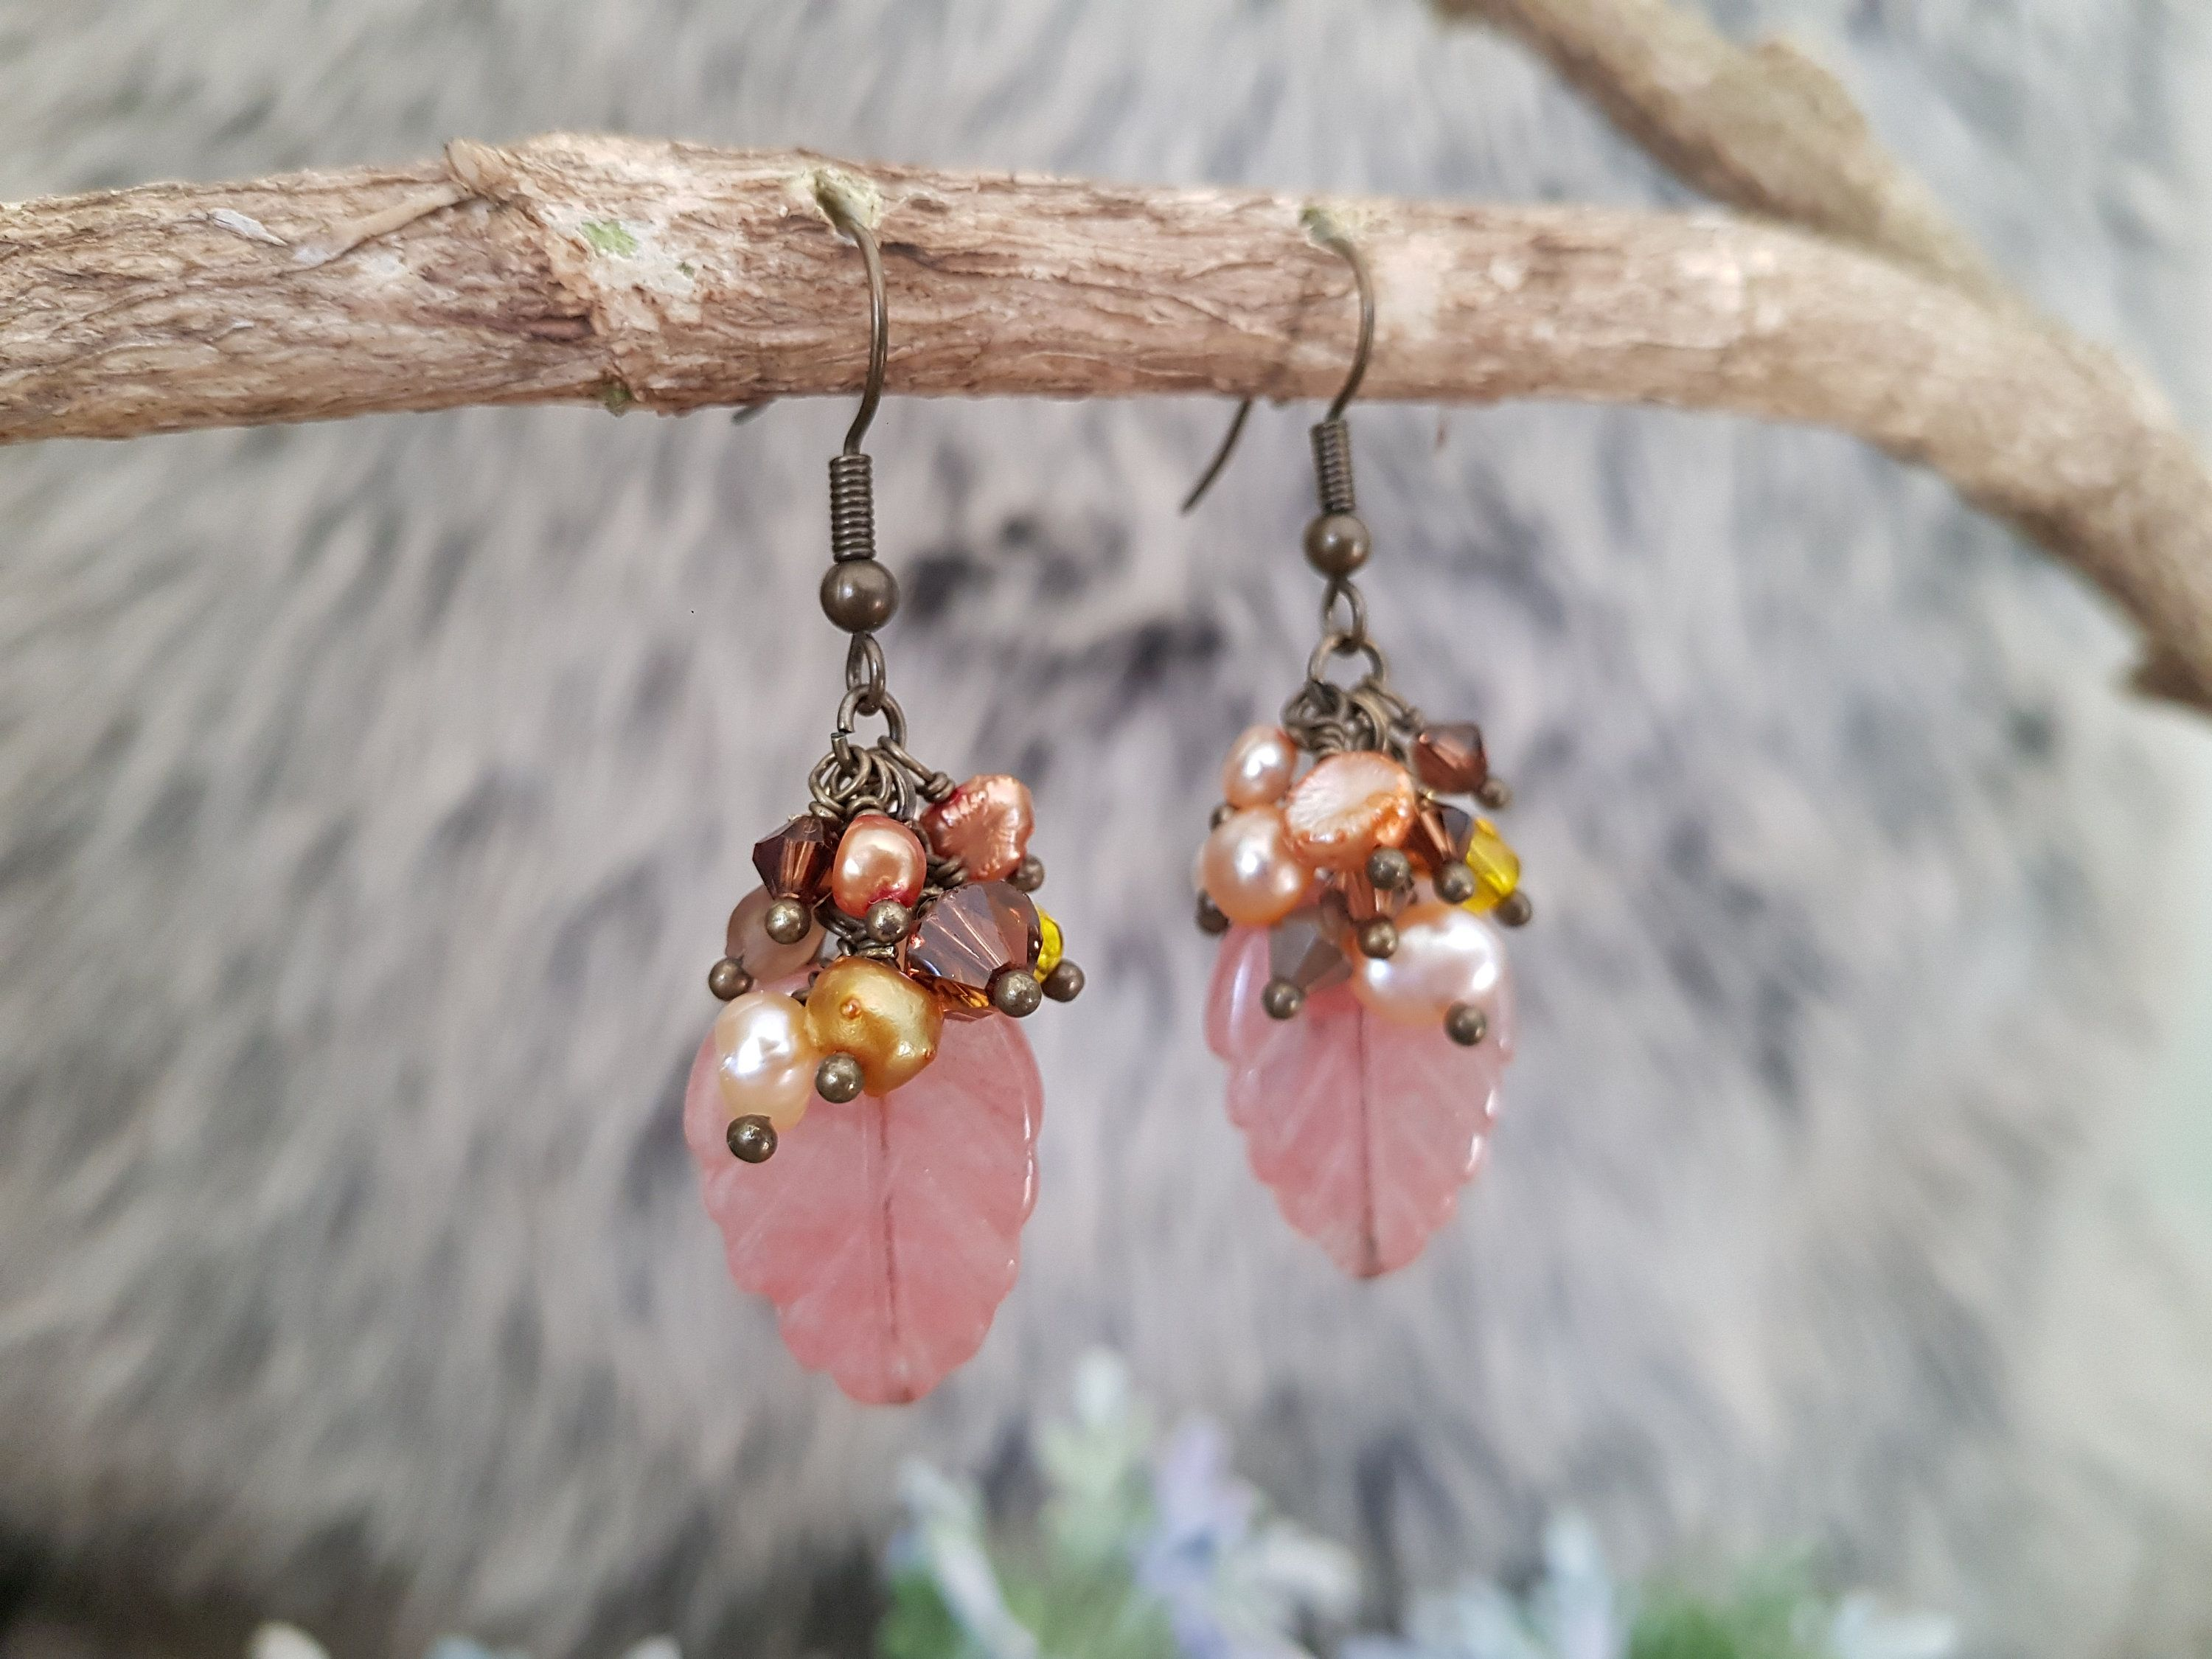 Beautiful earrings with a natural stone bead and a silver ear hook